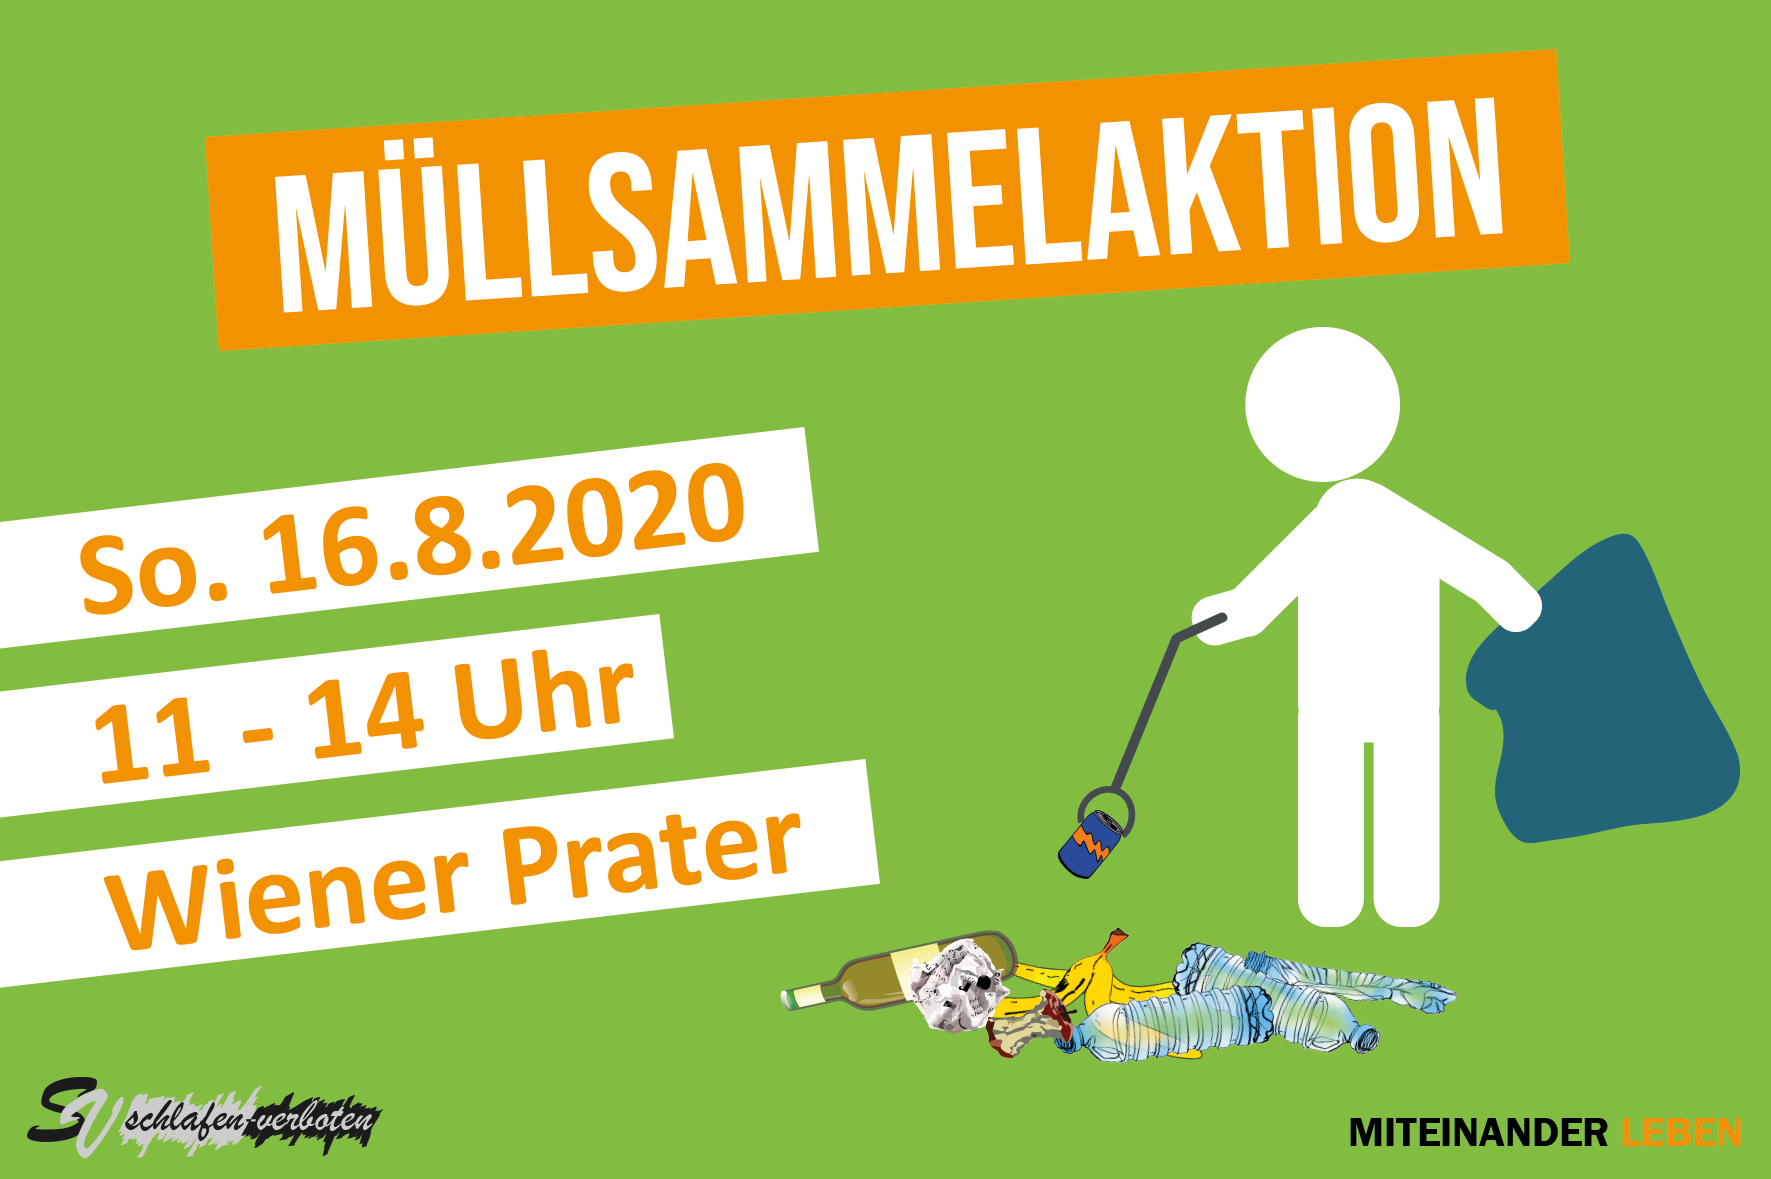 Müllsammelaktion Website 2020